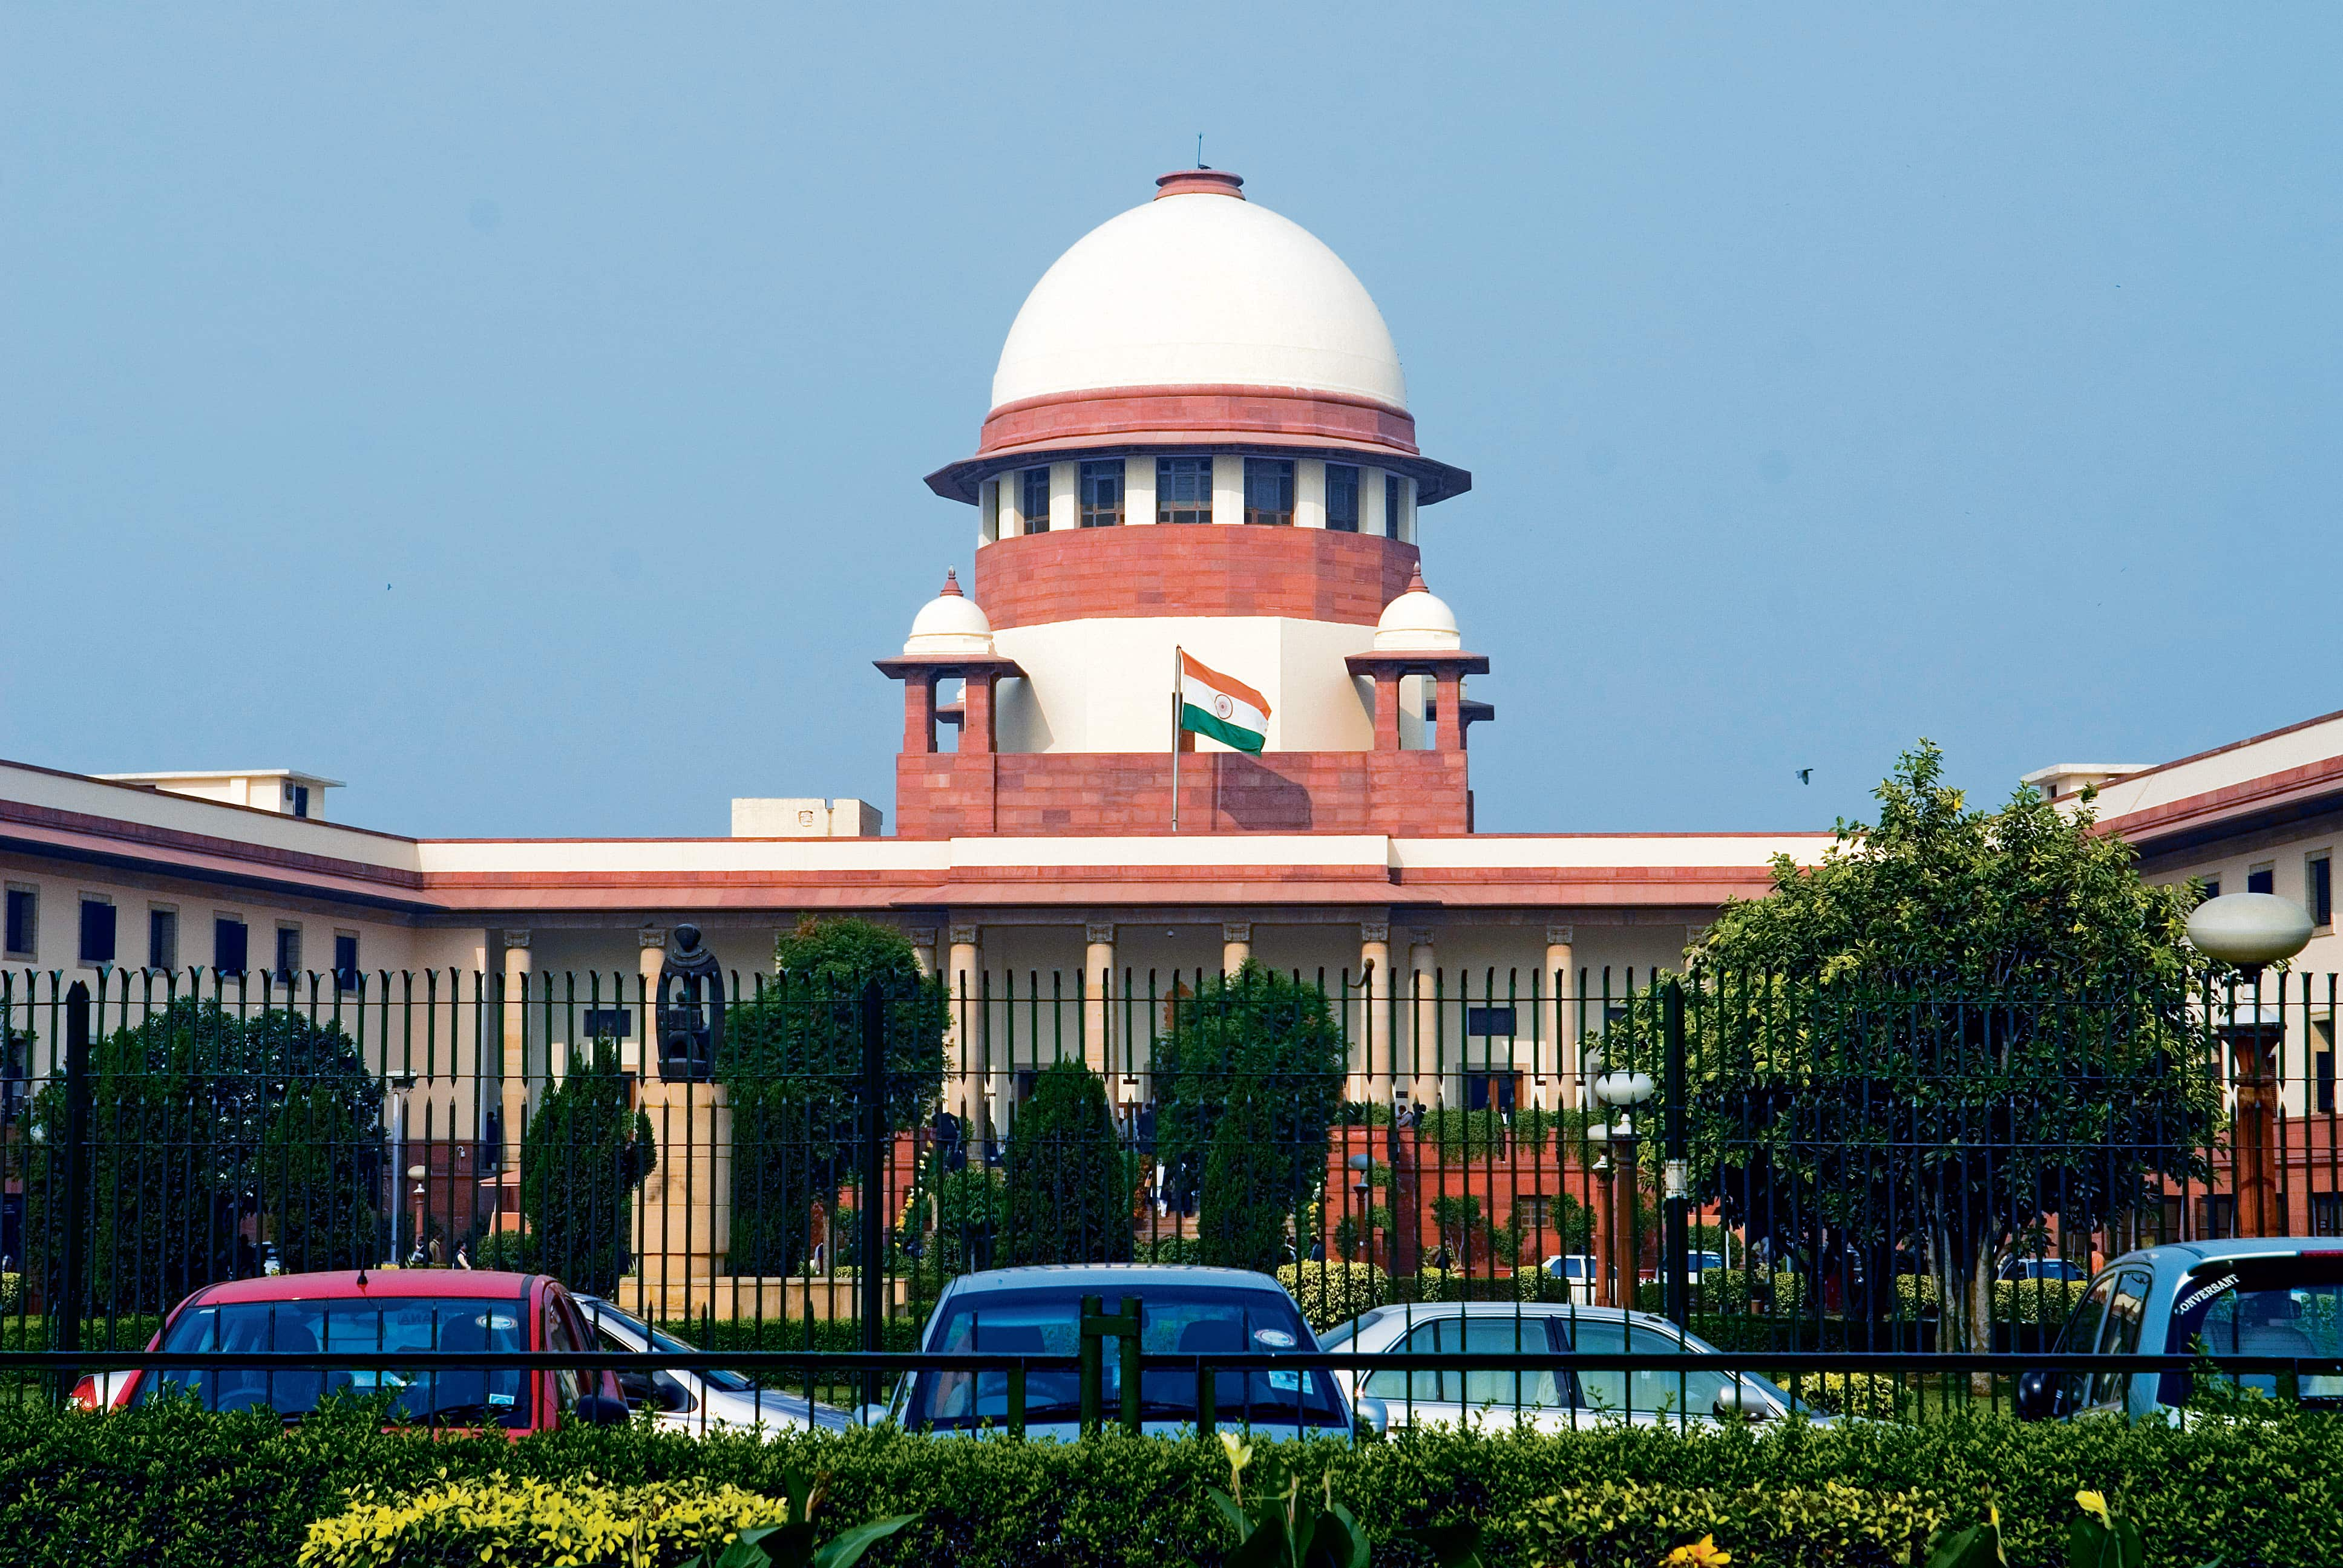 The apex court on Friday upheld the central government's November 2019 notification issued under the Insolvency and Bankruptcy Code